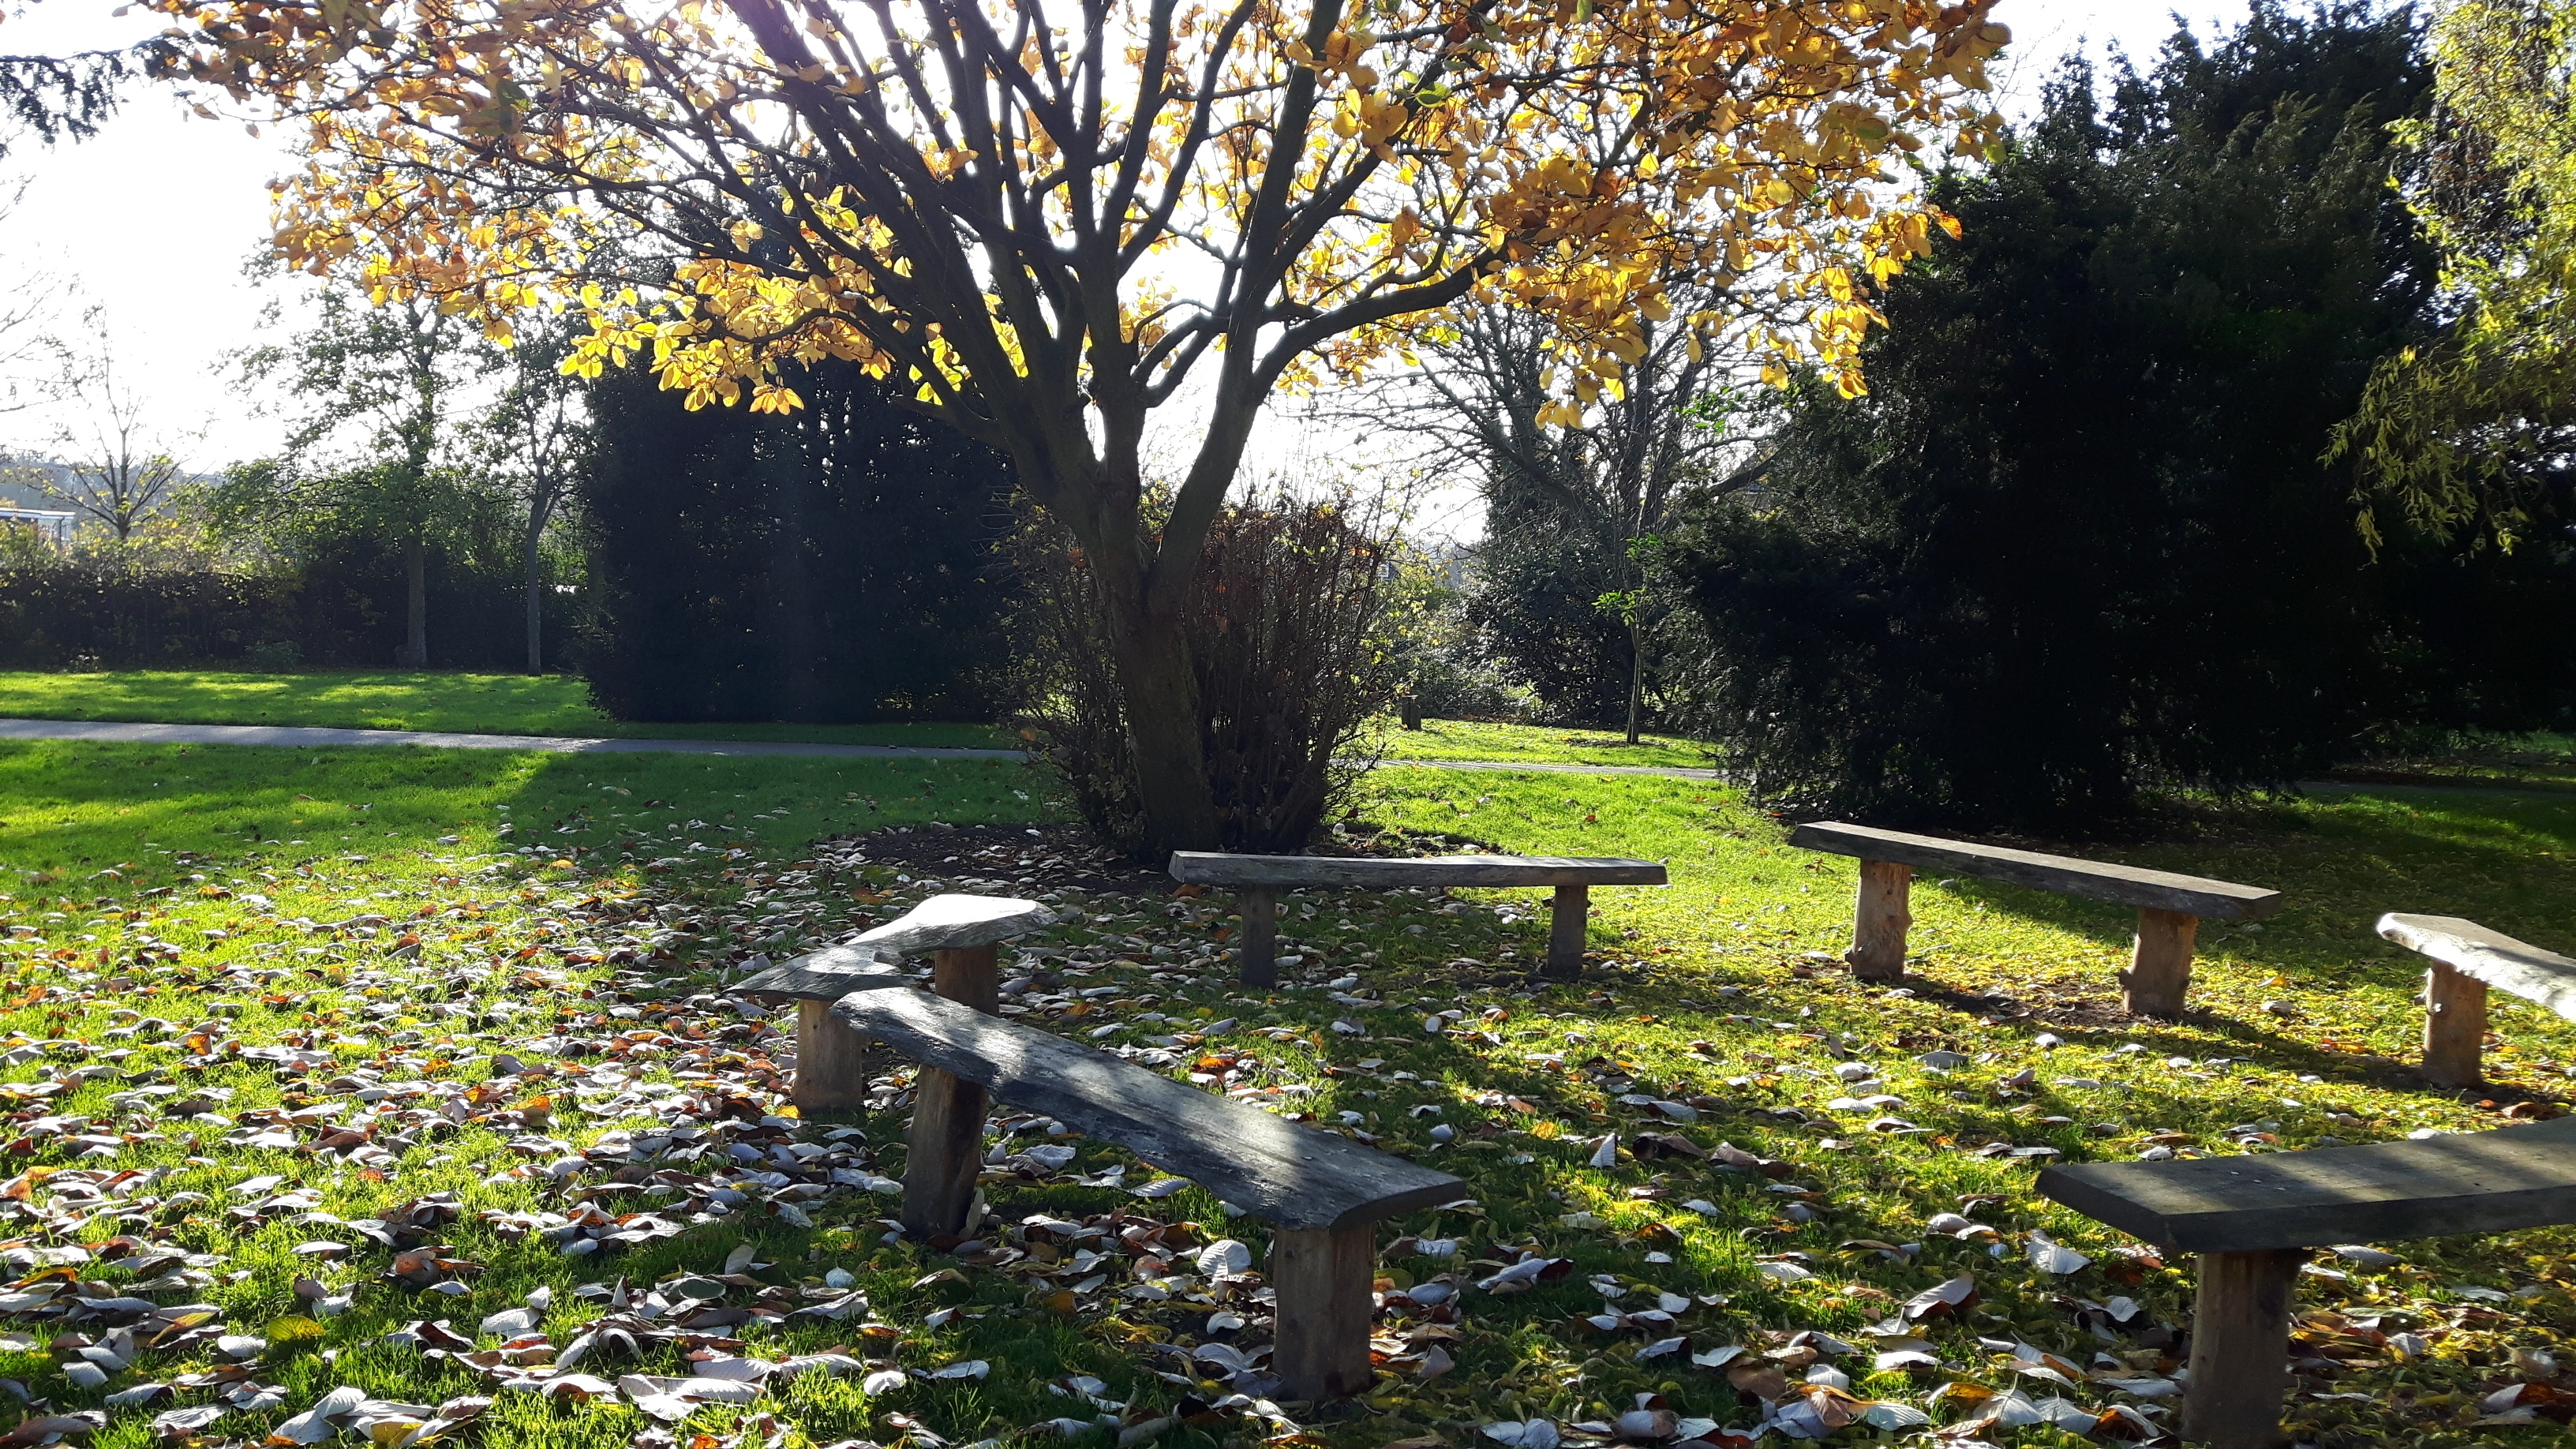 The bench area in autumn